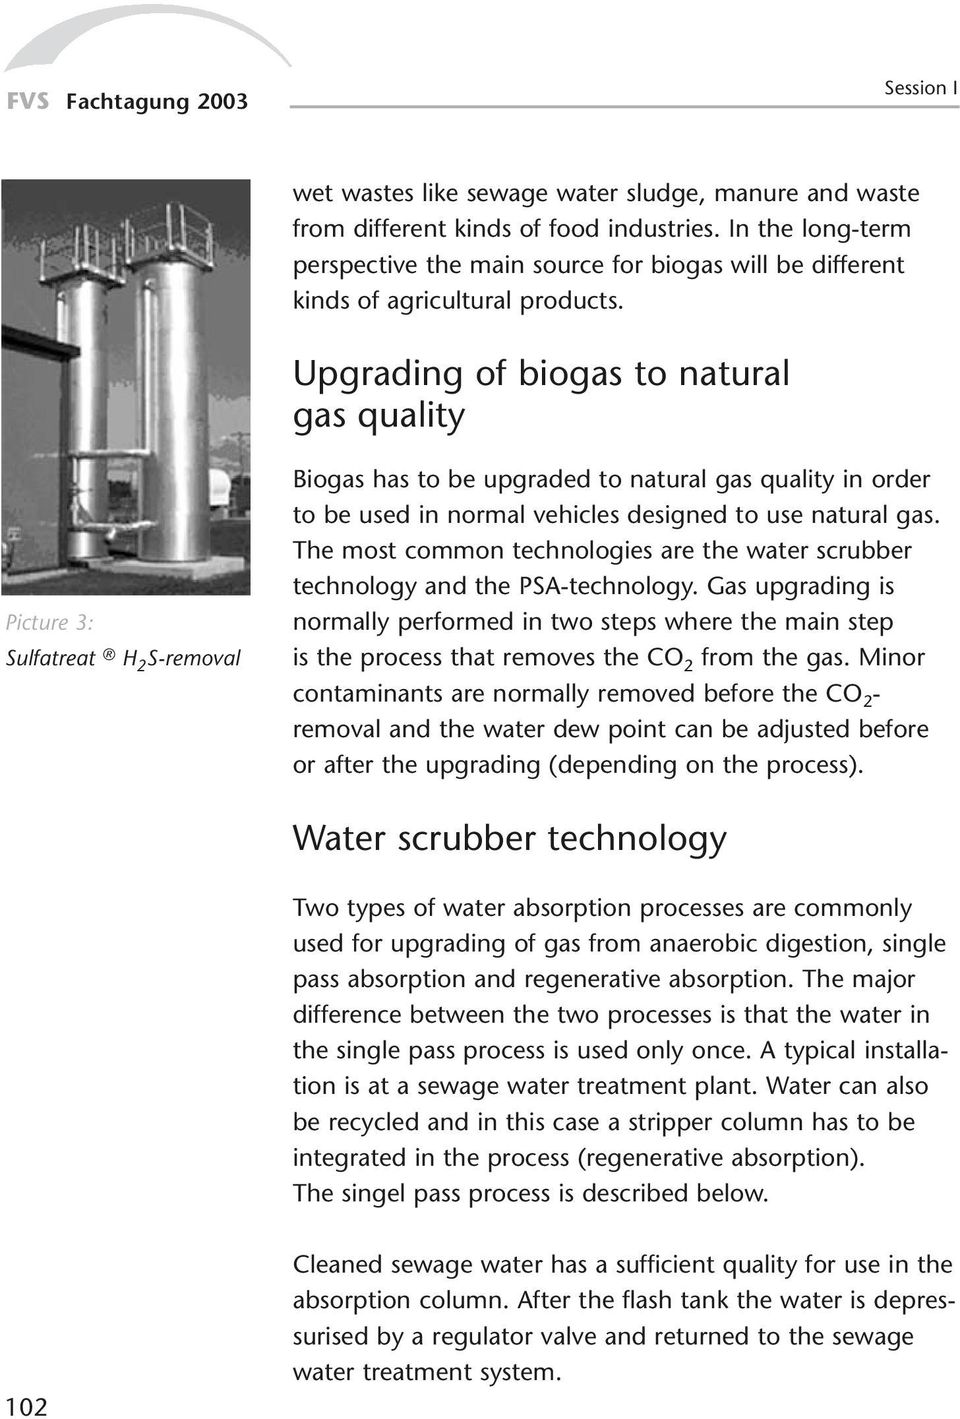 Upgrading of biogas to natural gas quality Picture 3: Sulfatreat H 2 S-removal Biogas has to be upgraded to natural gas quality in order to be used in normal vehicles designed to use natural gas.